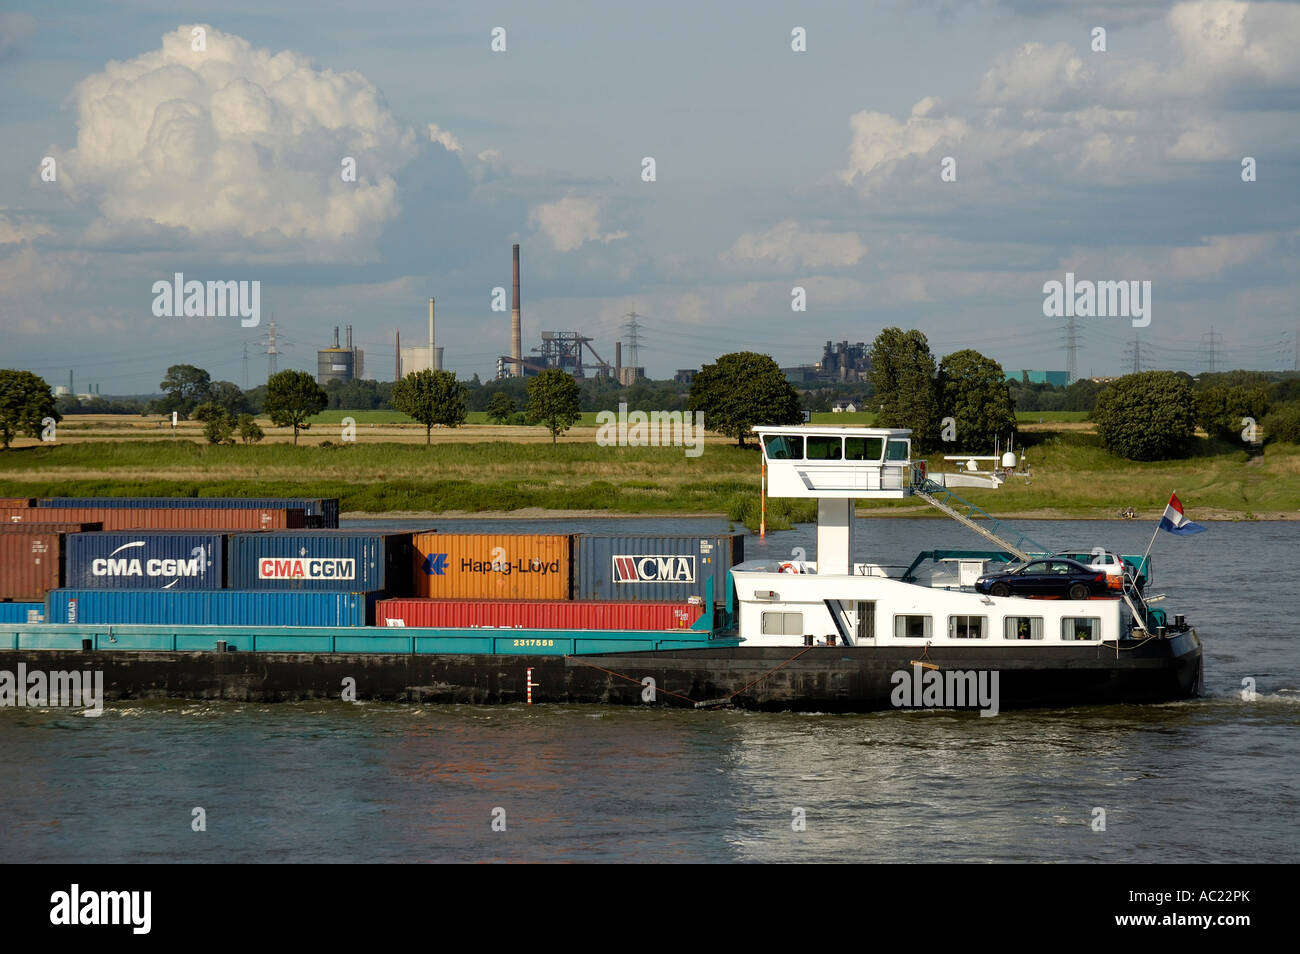 Container transport on the Lower Rhine, Krefeld, Germany. - Stock Image